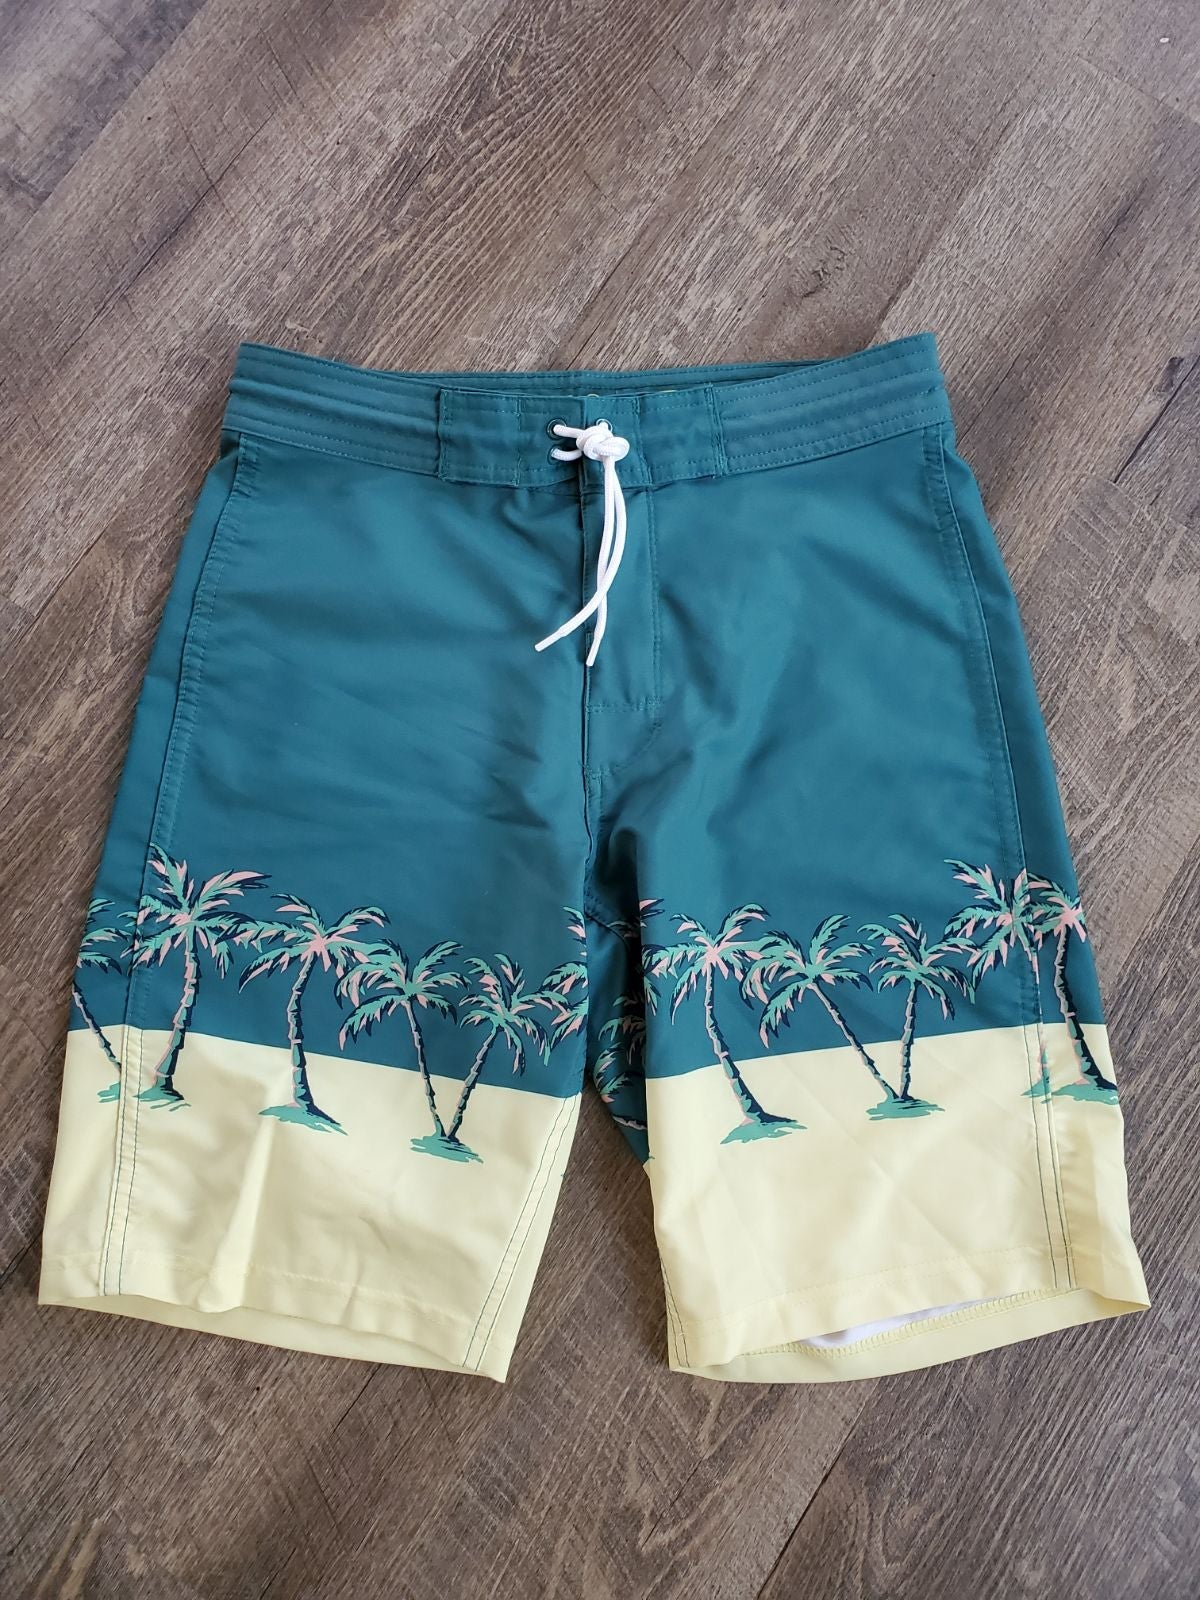 OLD NAVY swim trunks surf shorts Sz. 28